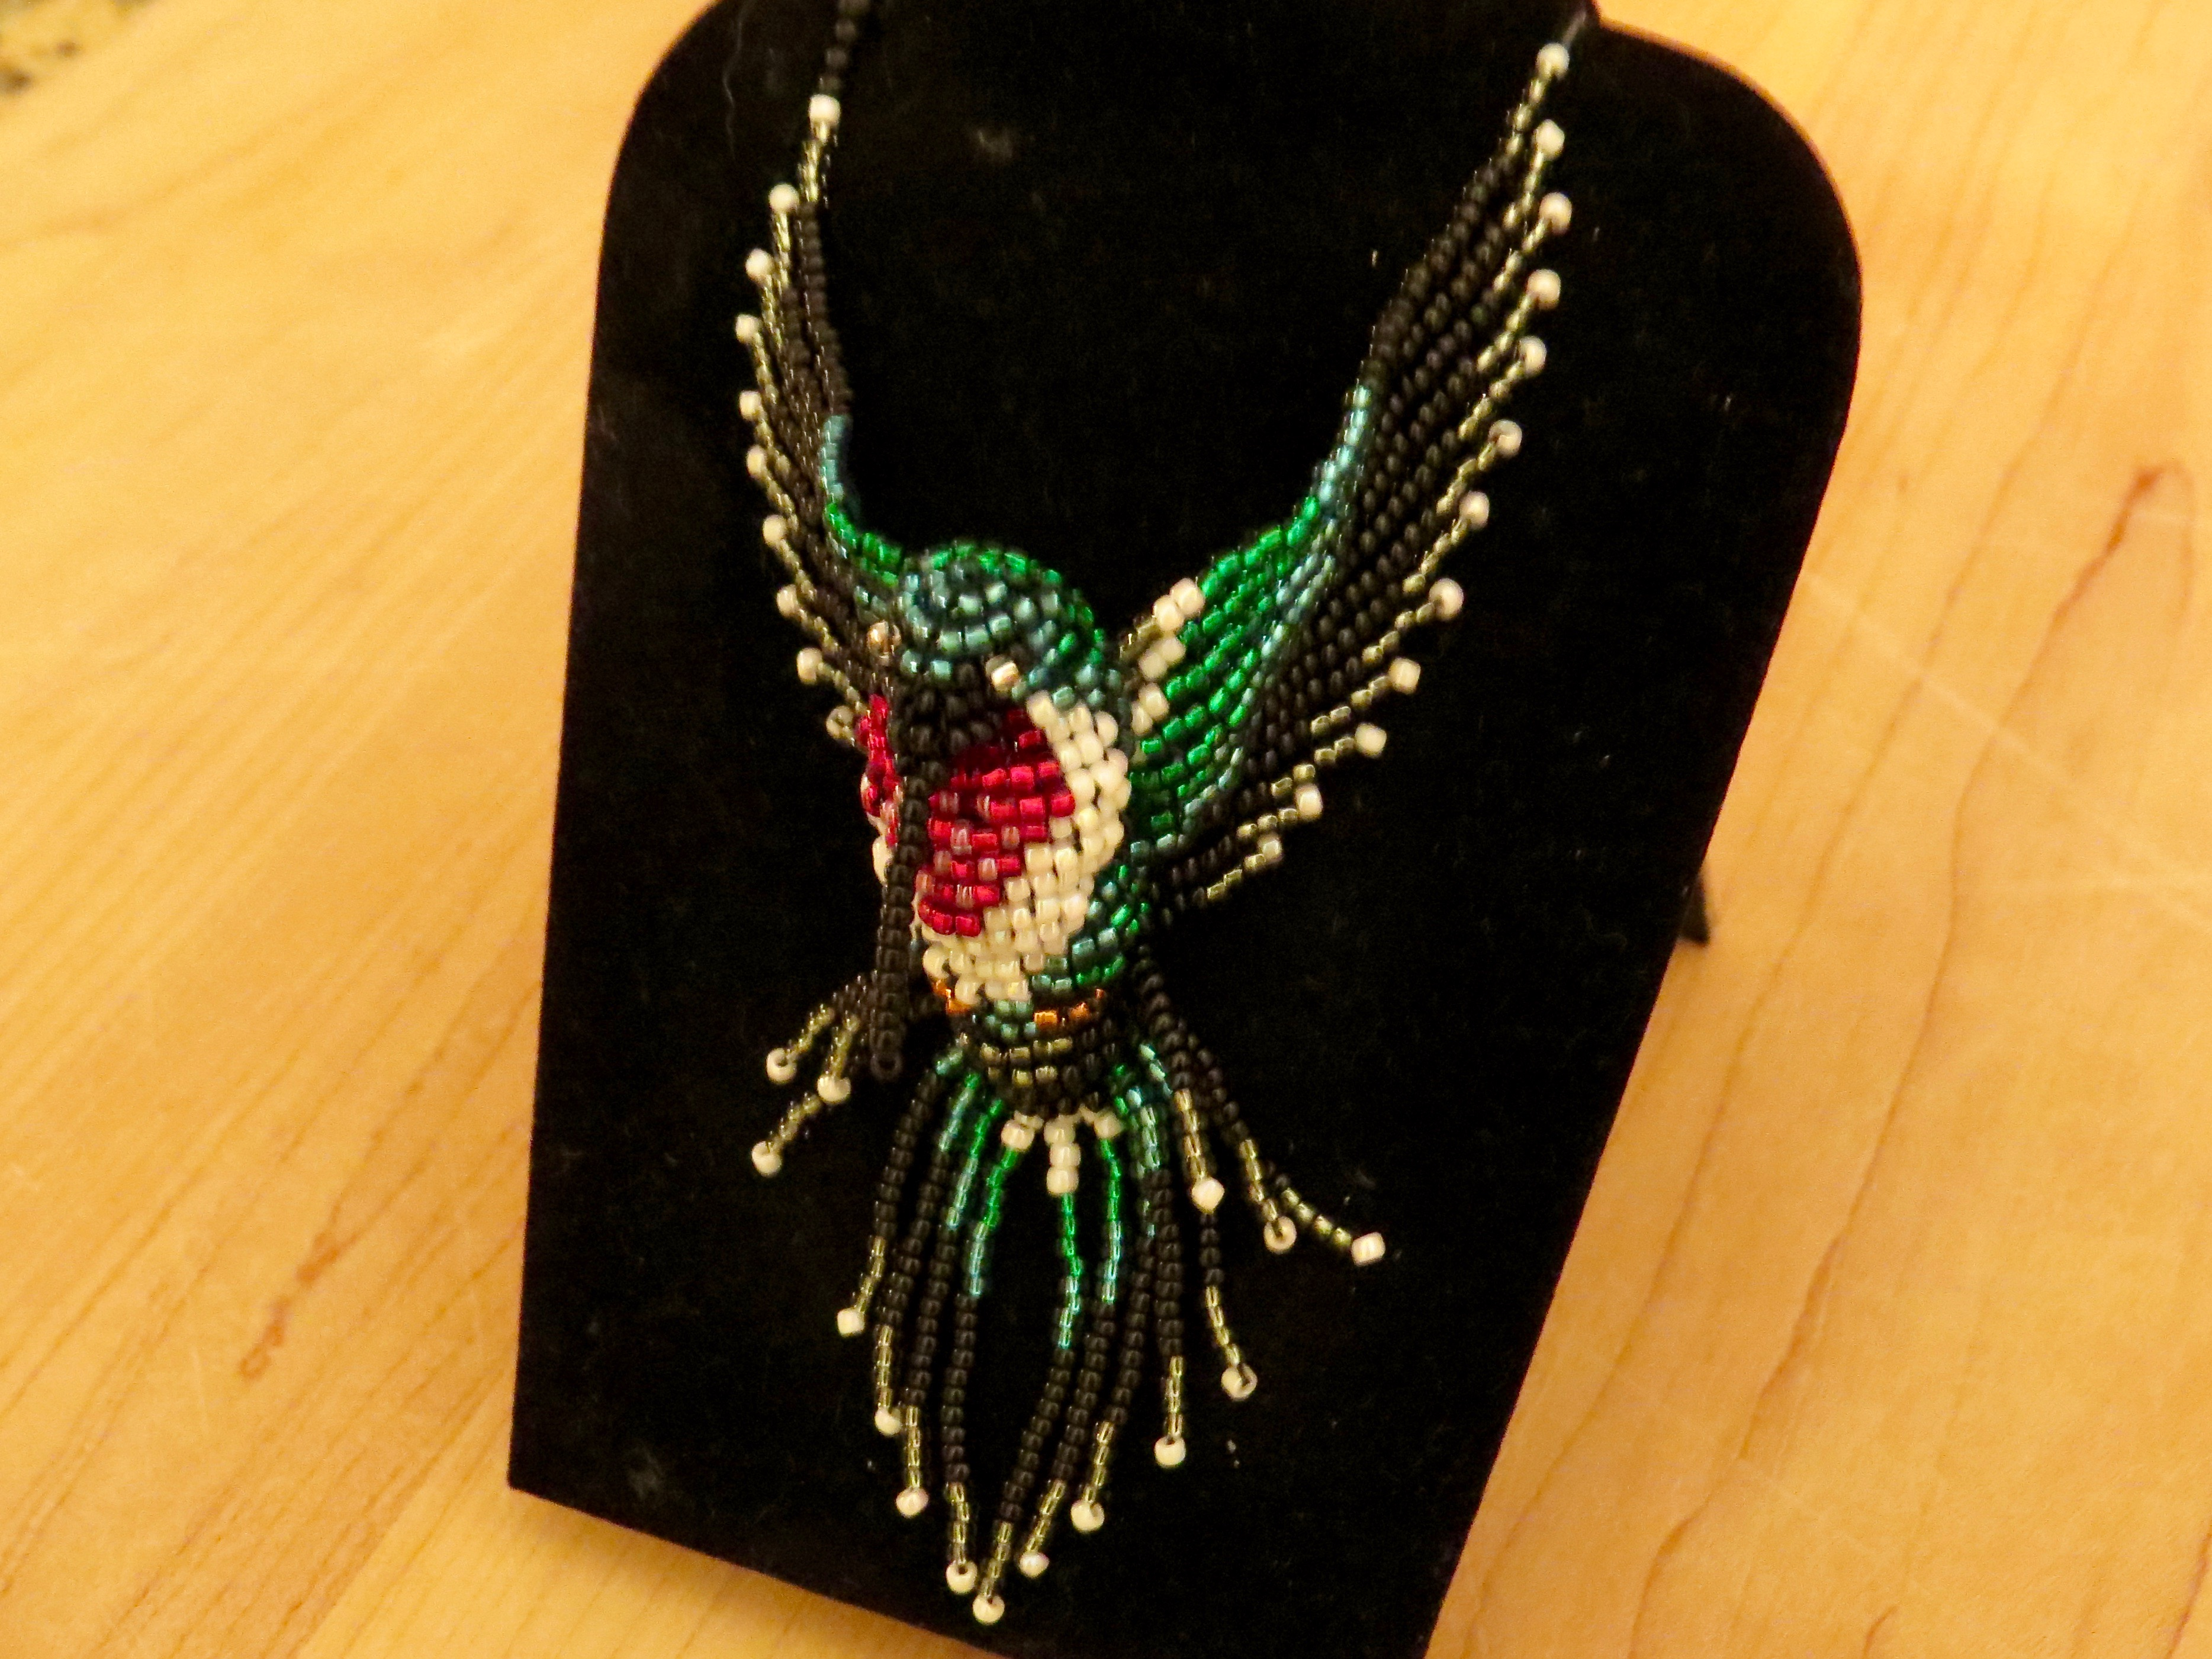 For my birthday Clara made me this exquisite Hummingbird Necklace which she designed and beaded herself. Her Mother found a perfect hummingbird picture and Clara translated it into jewelry. It is quite beautiful and I was, in a word, thrilled.